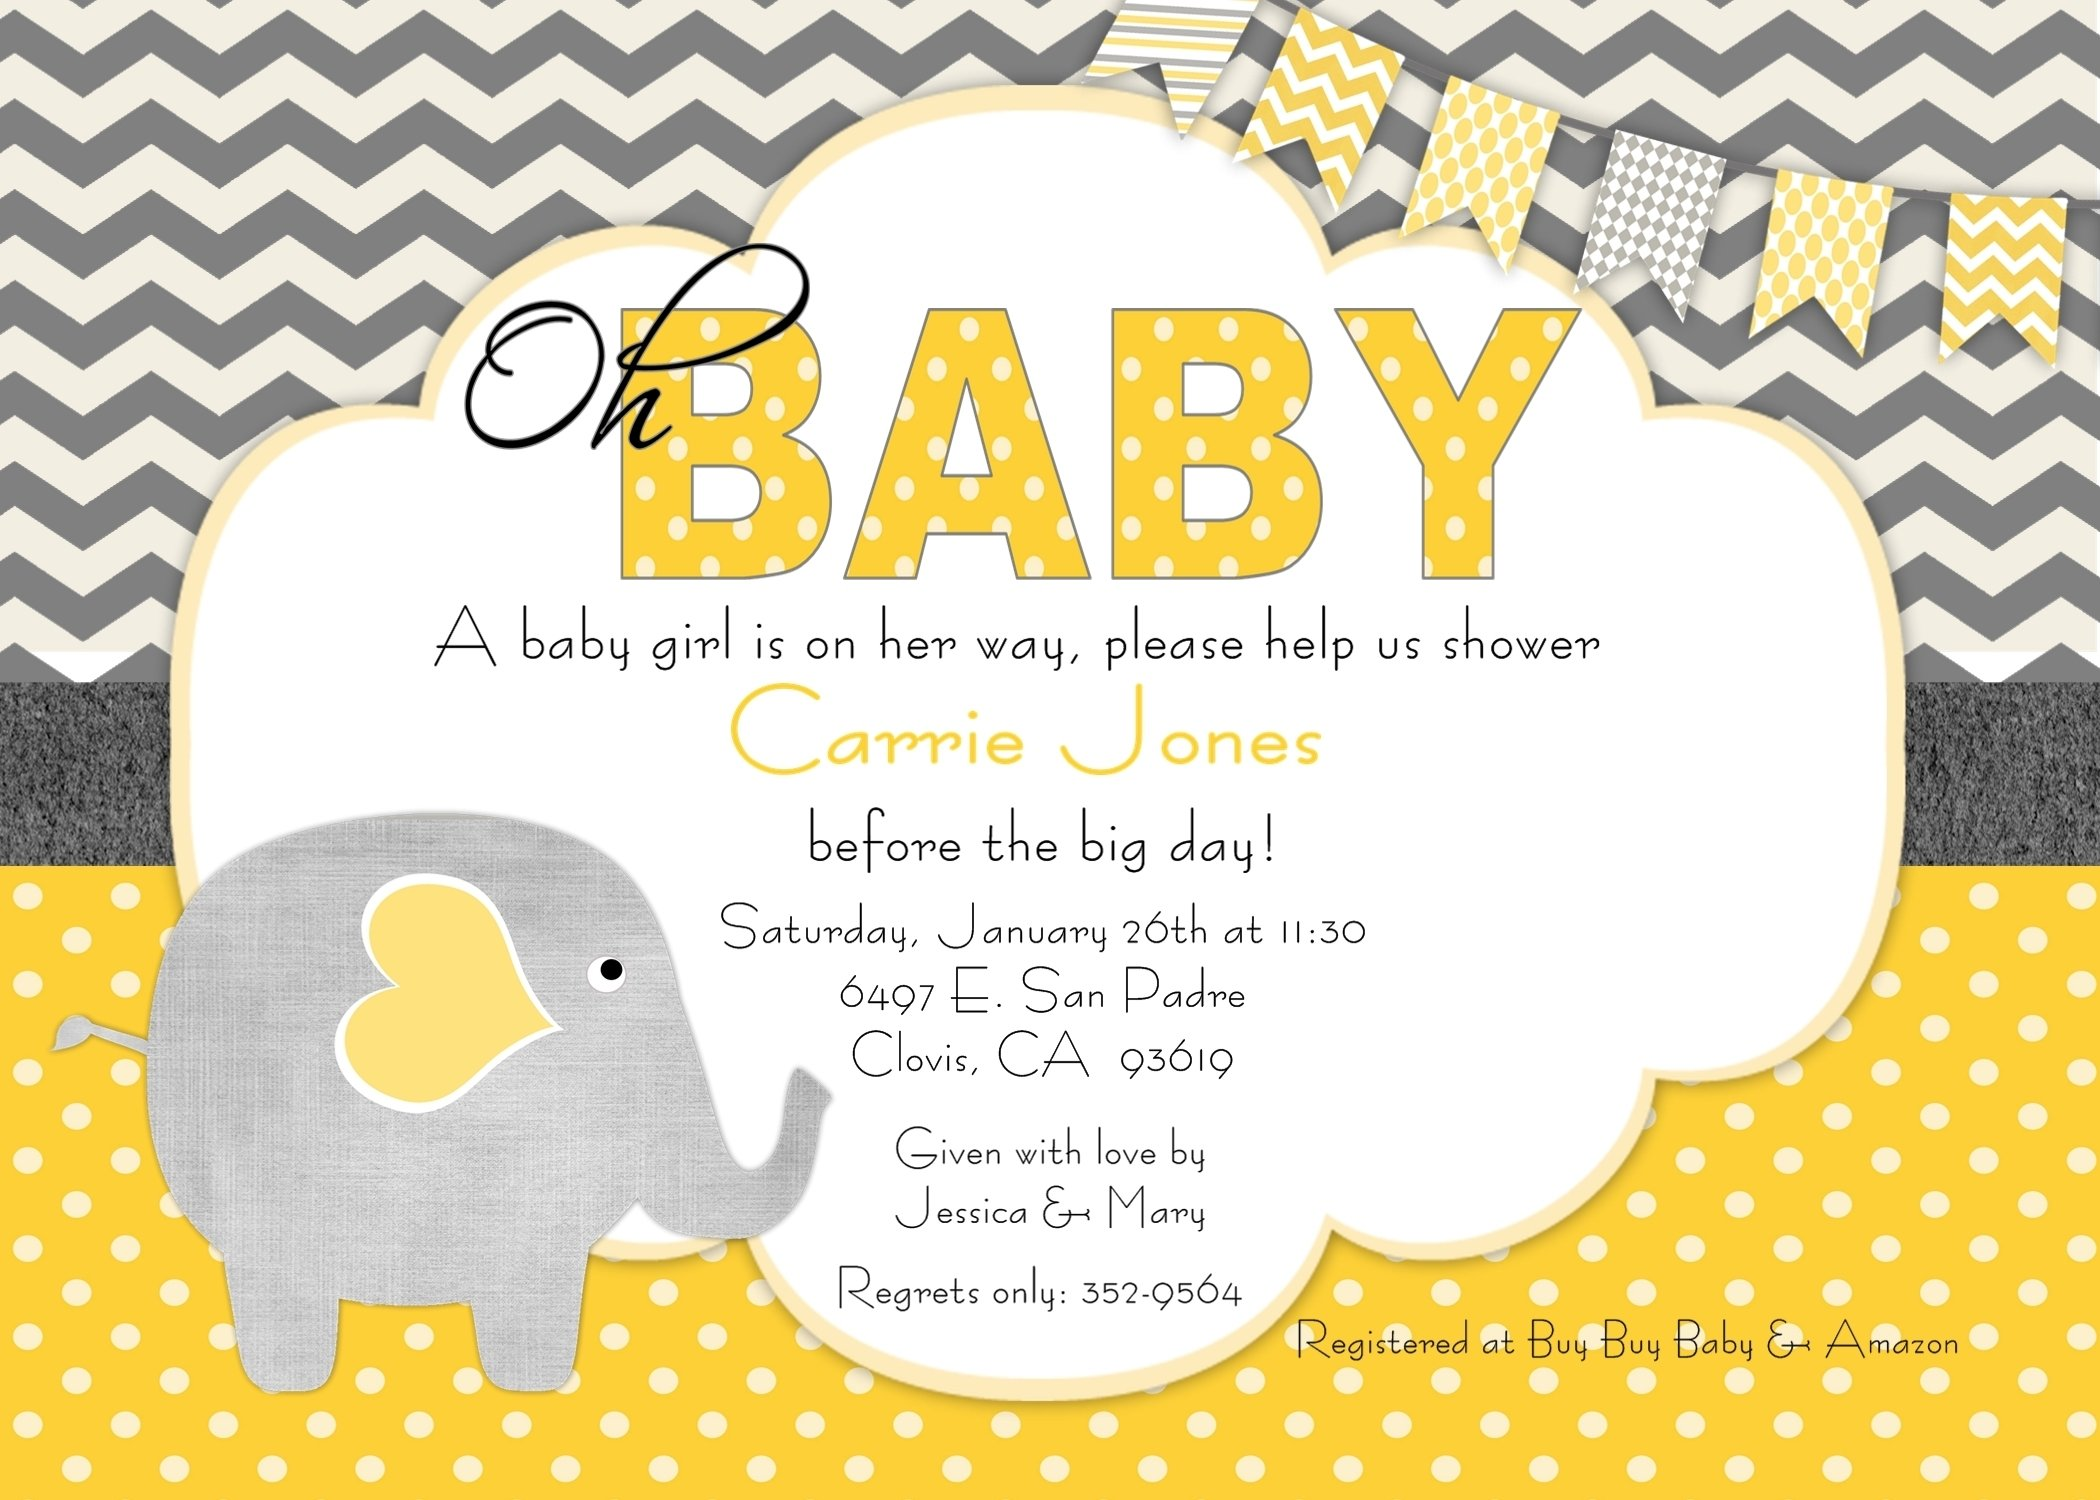 10 Attractive Invitation Ideas For Baby Shower baby shower invitation ideas kinderhooktap 2020